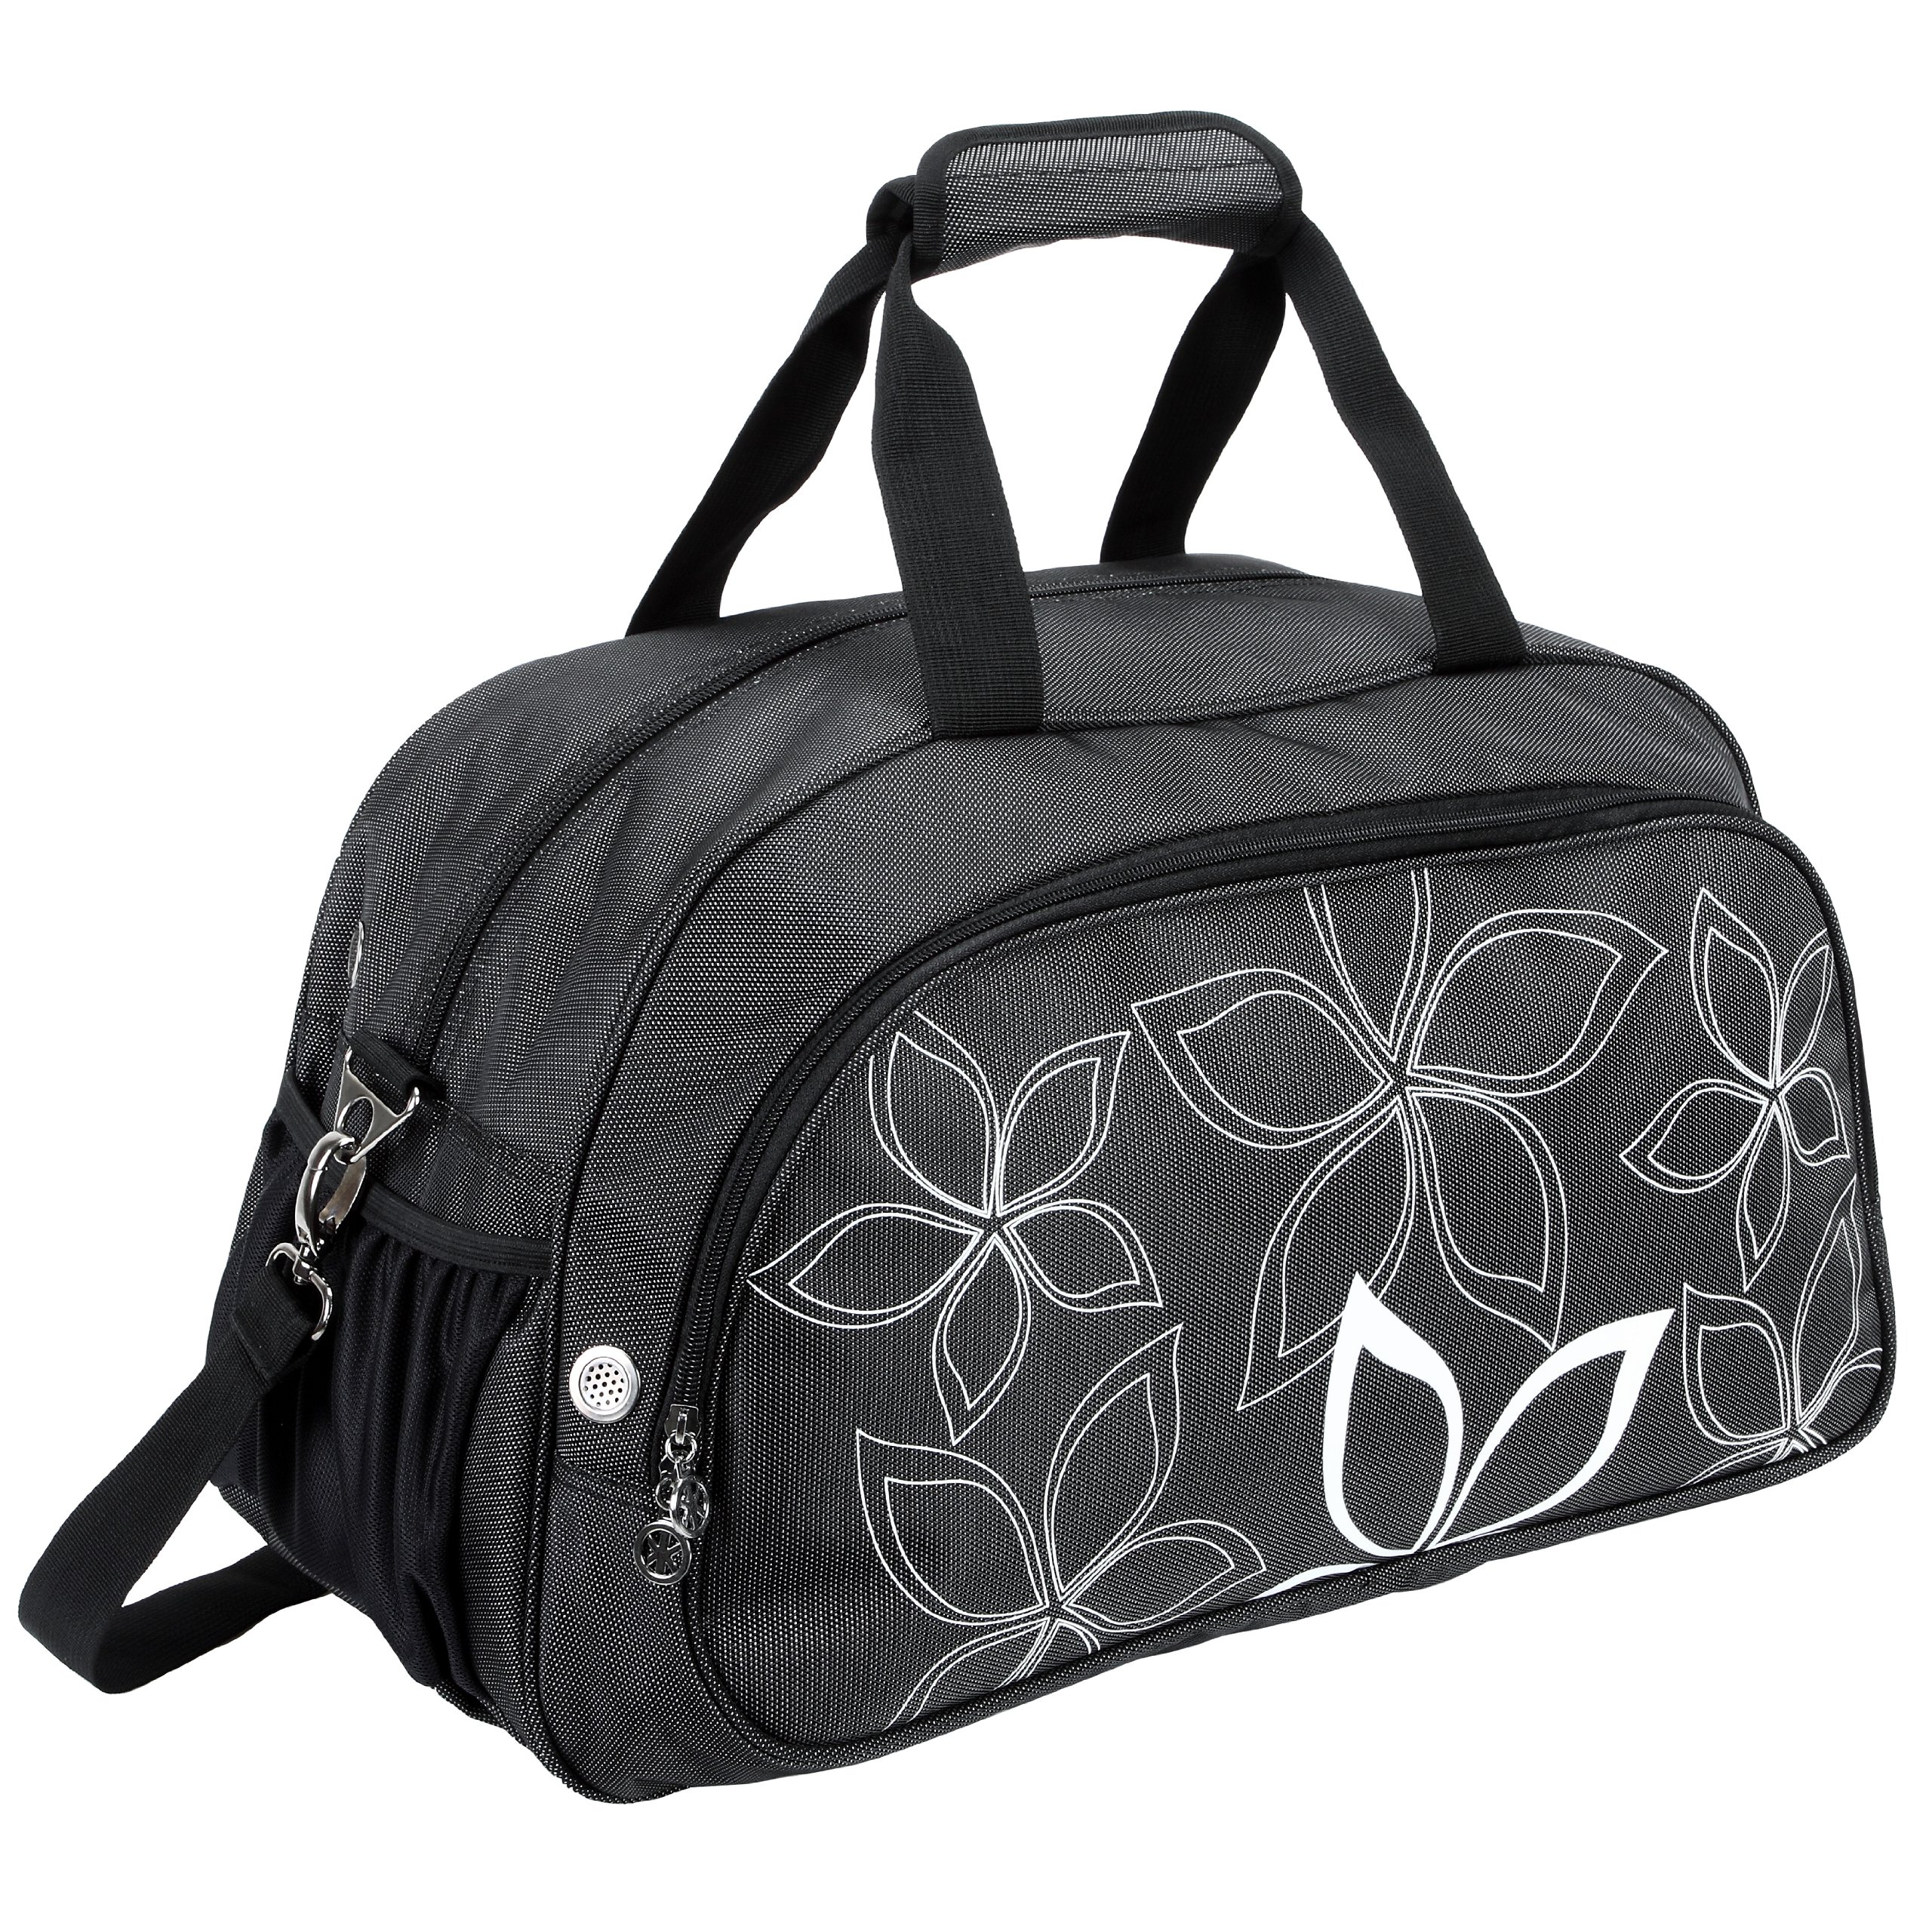 20'' Fashionable Flowers Pattern Black Sports Gym Tote Bag Travel Carryon